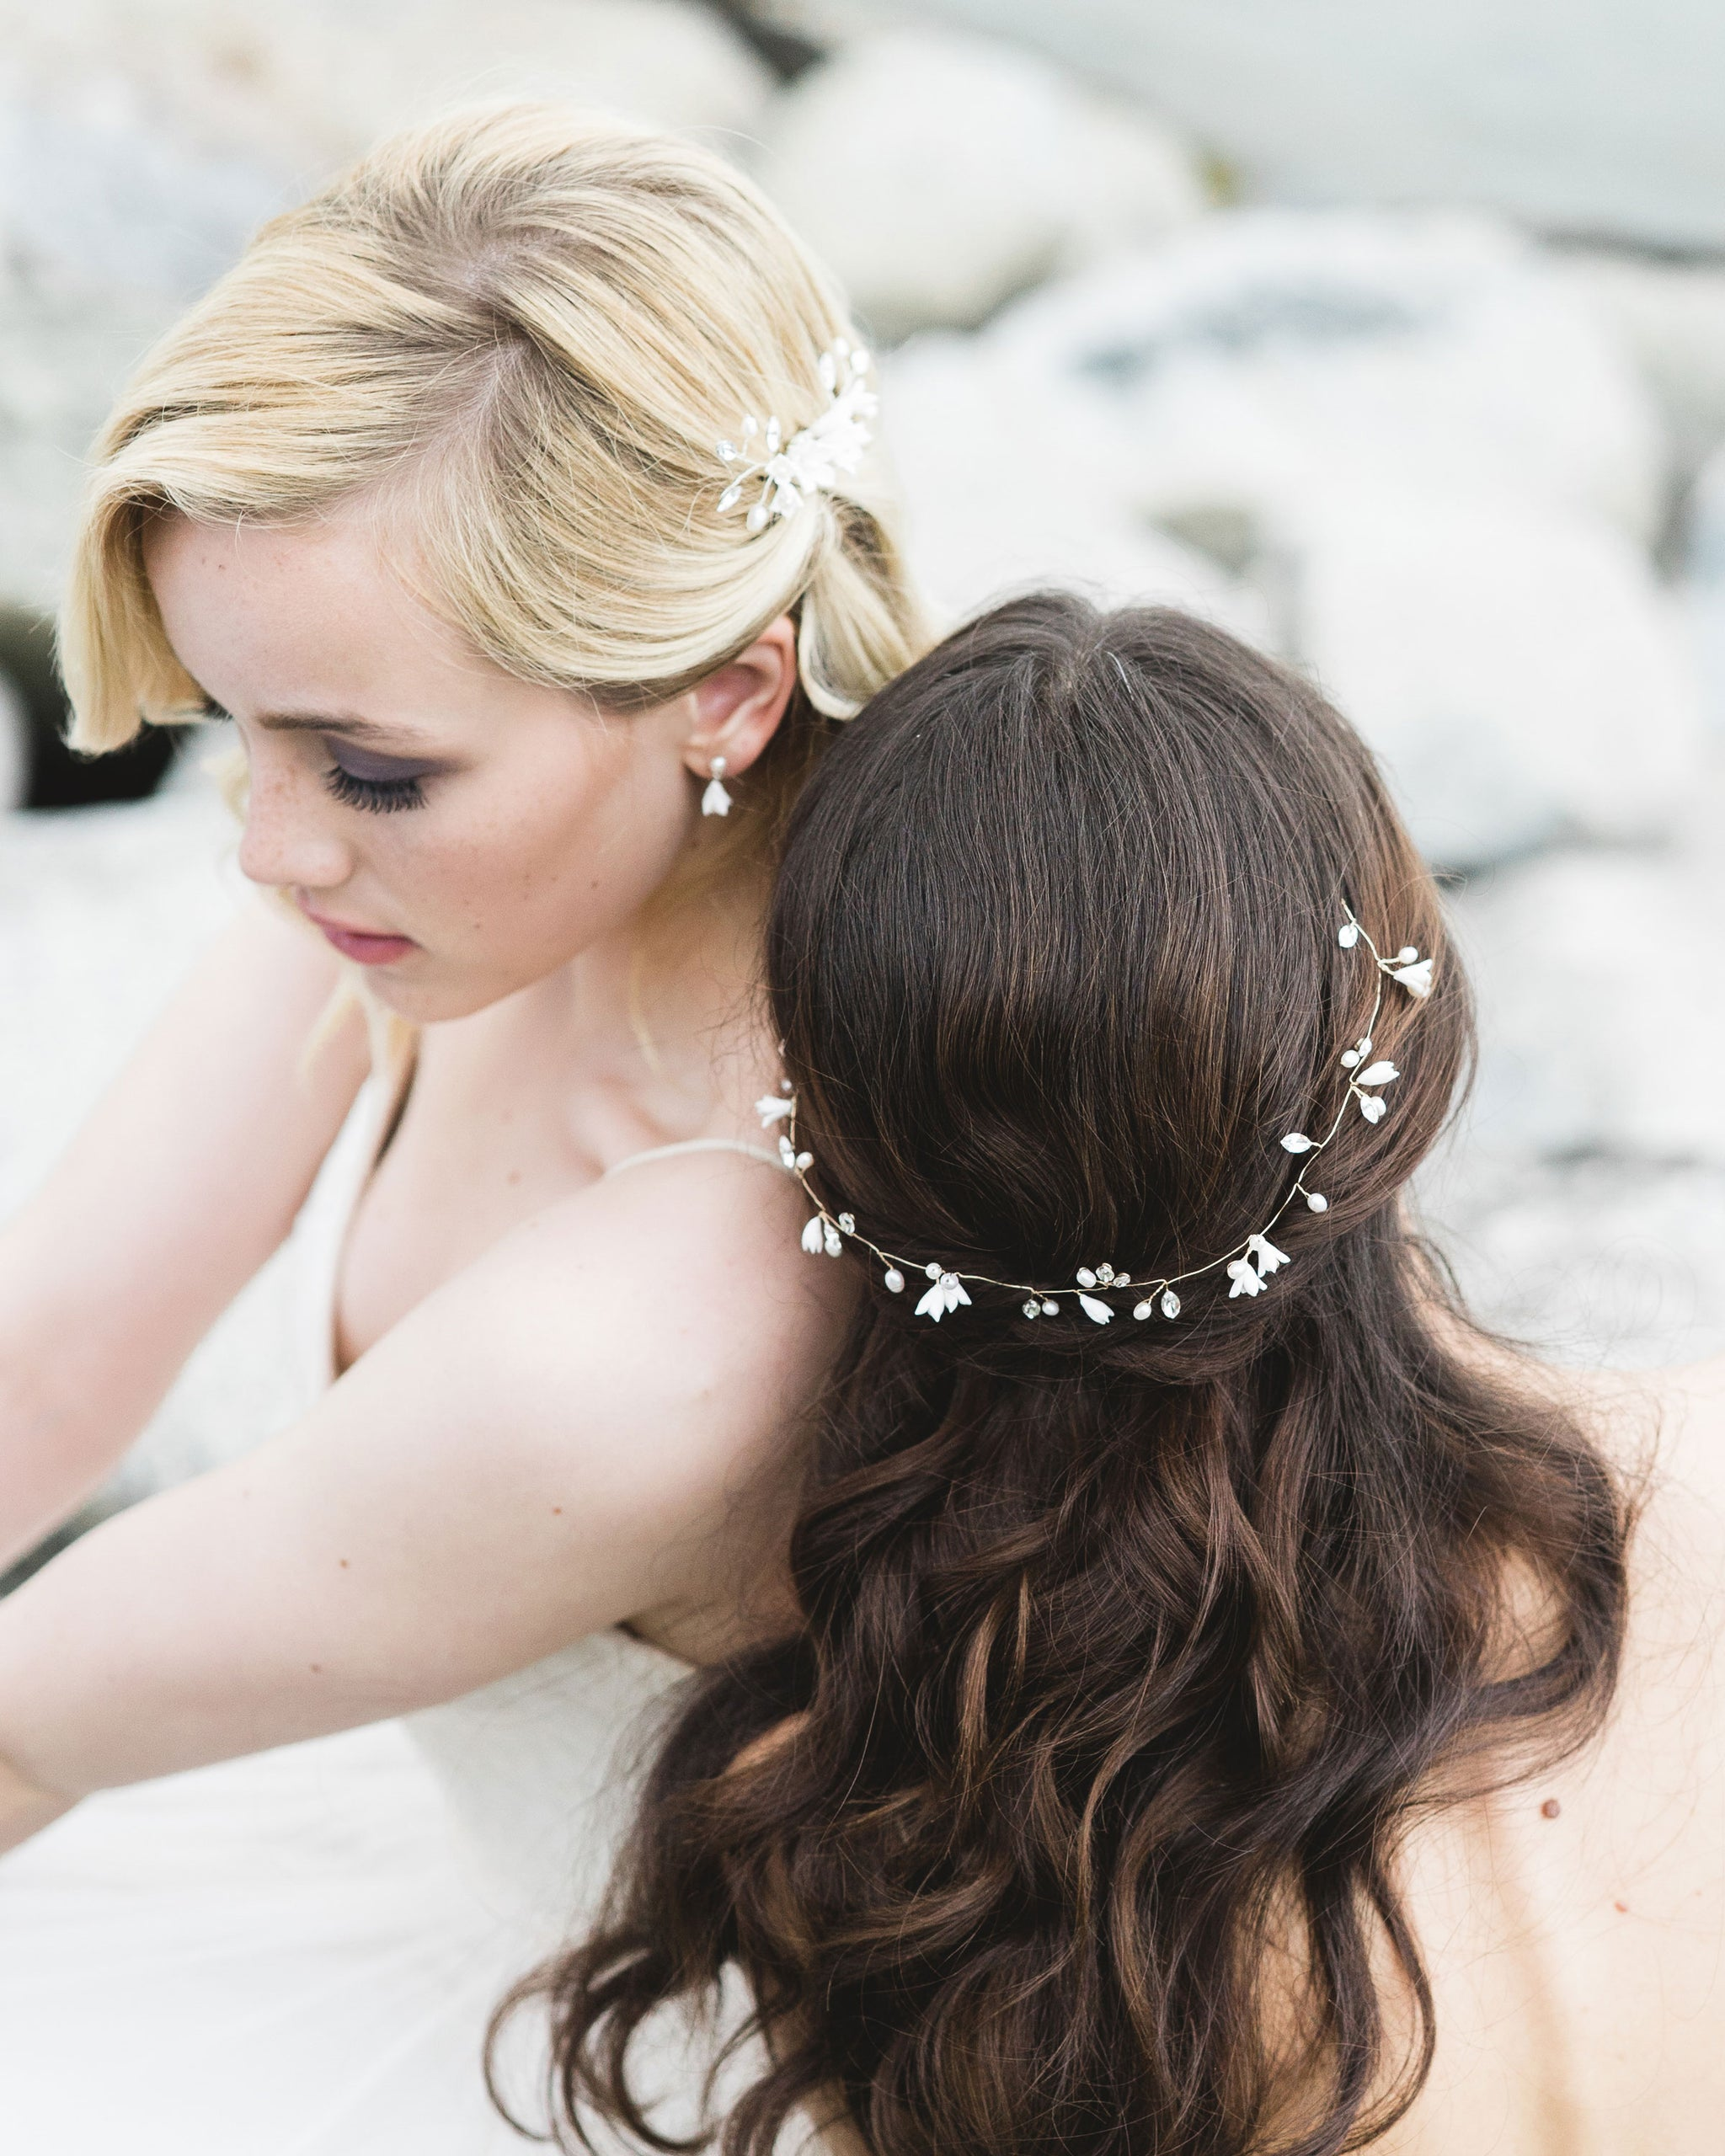 delicate Bell Fleur Hair Vine made of dainty flowers, pearls, and Swarovski crystals; styled to the back with flowing waves.